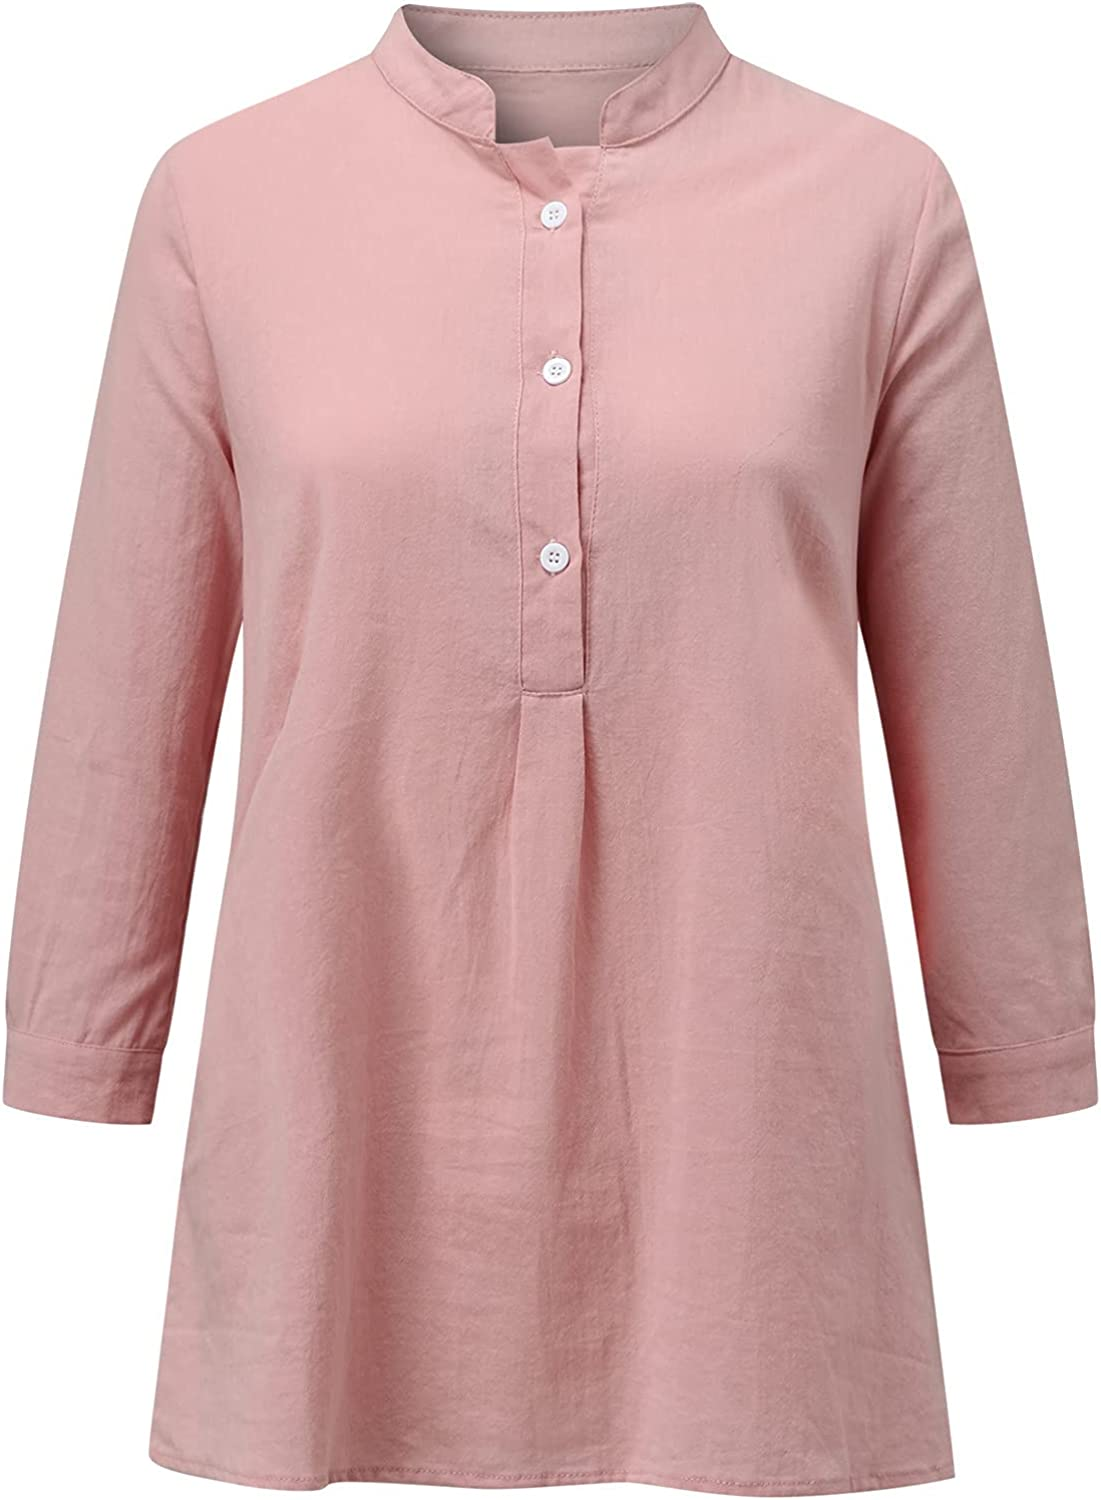 Linen Shirts for Women Summer 3/4 Sleeve Loose Fit Tunic Tops V Neck Button Down Blouses Shirts with Pockets